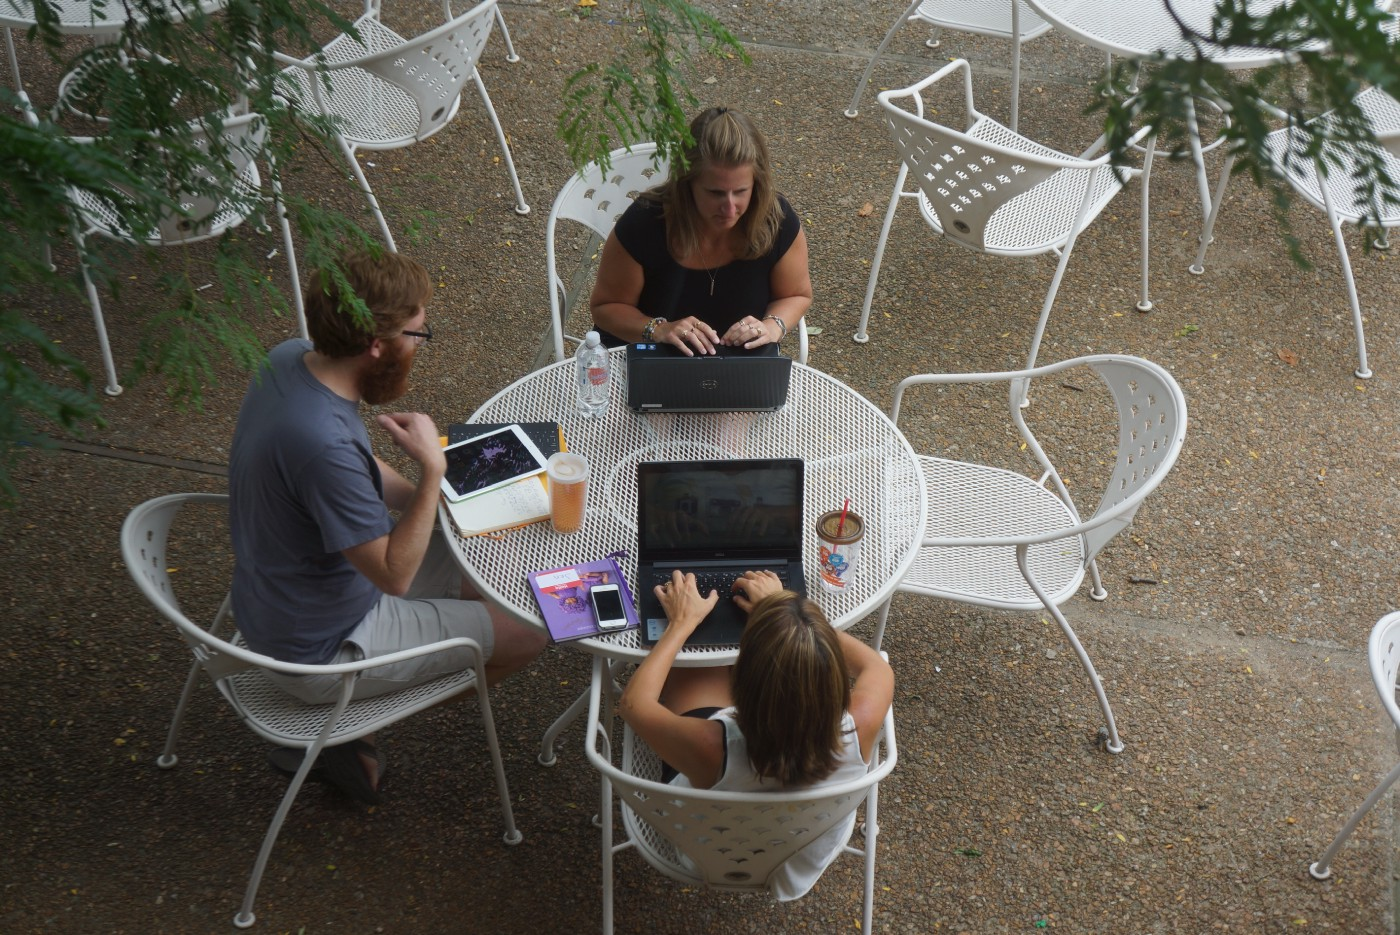 A man and two women sitting around an outdoor table, talking. On the table are books, computers, and writing materials.